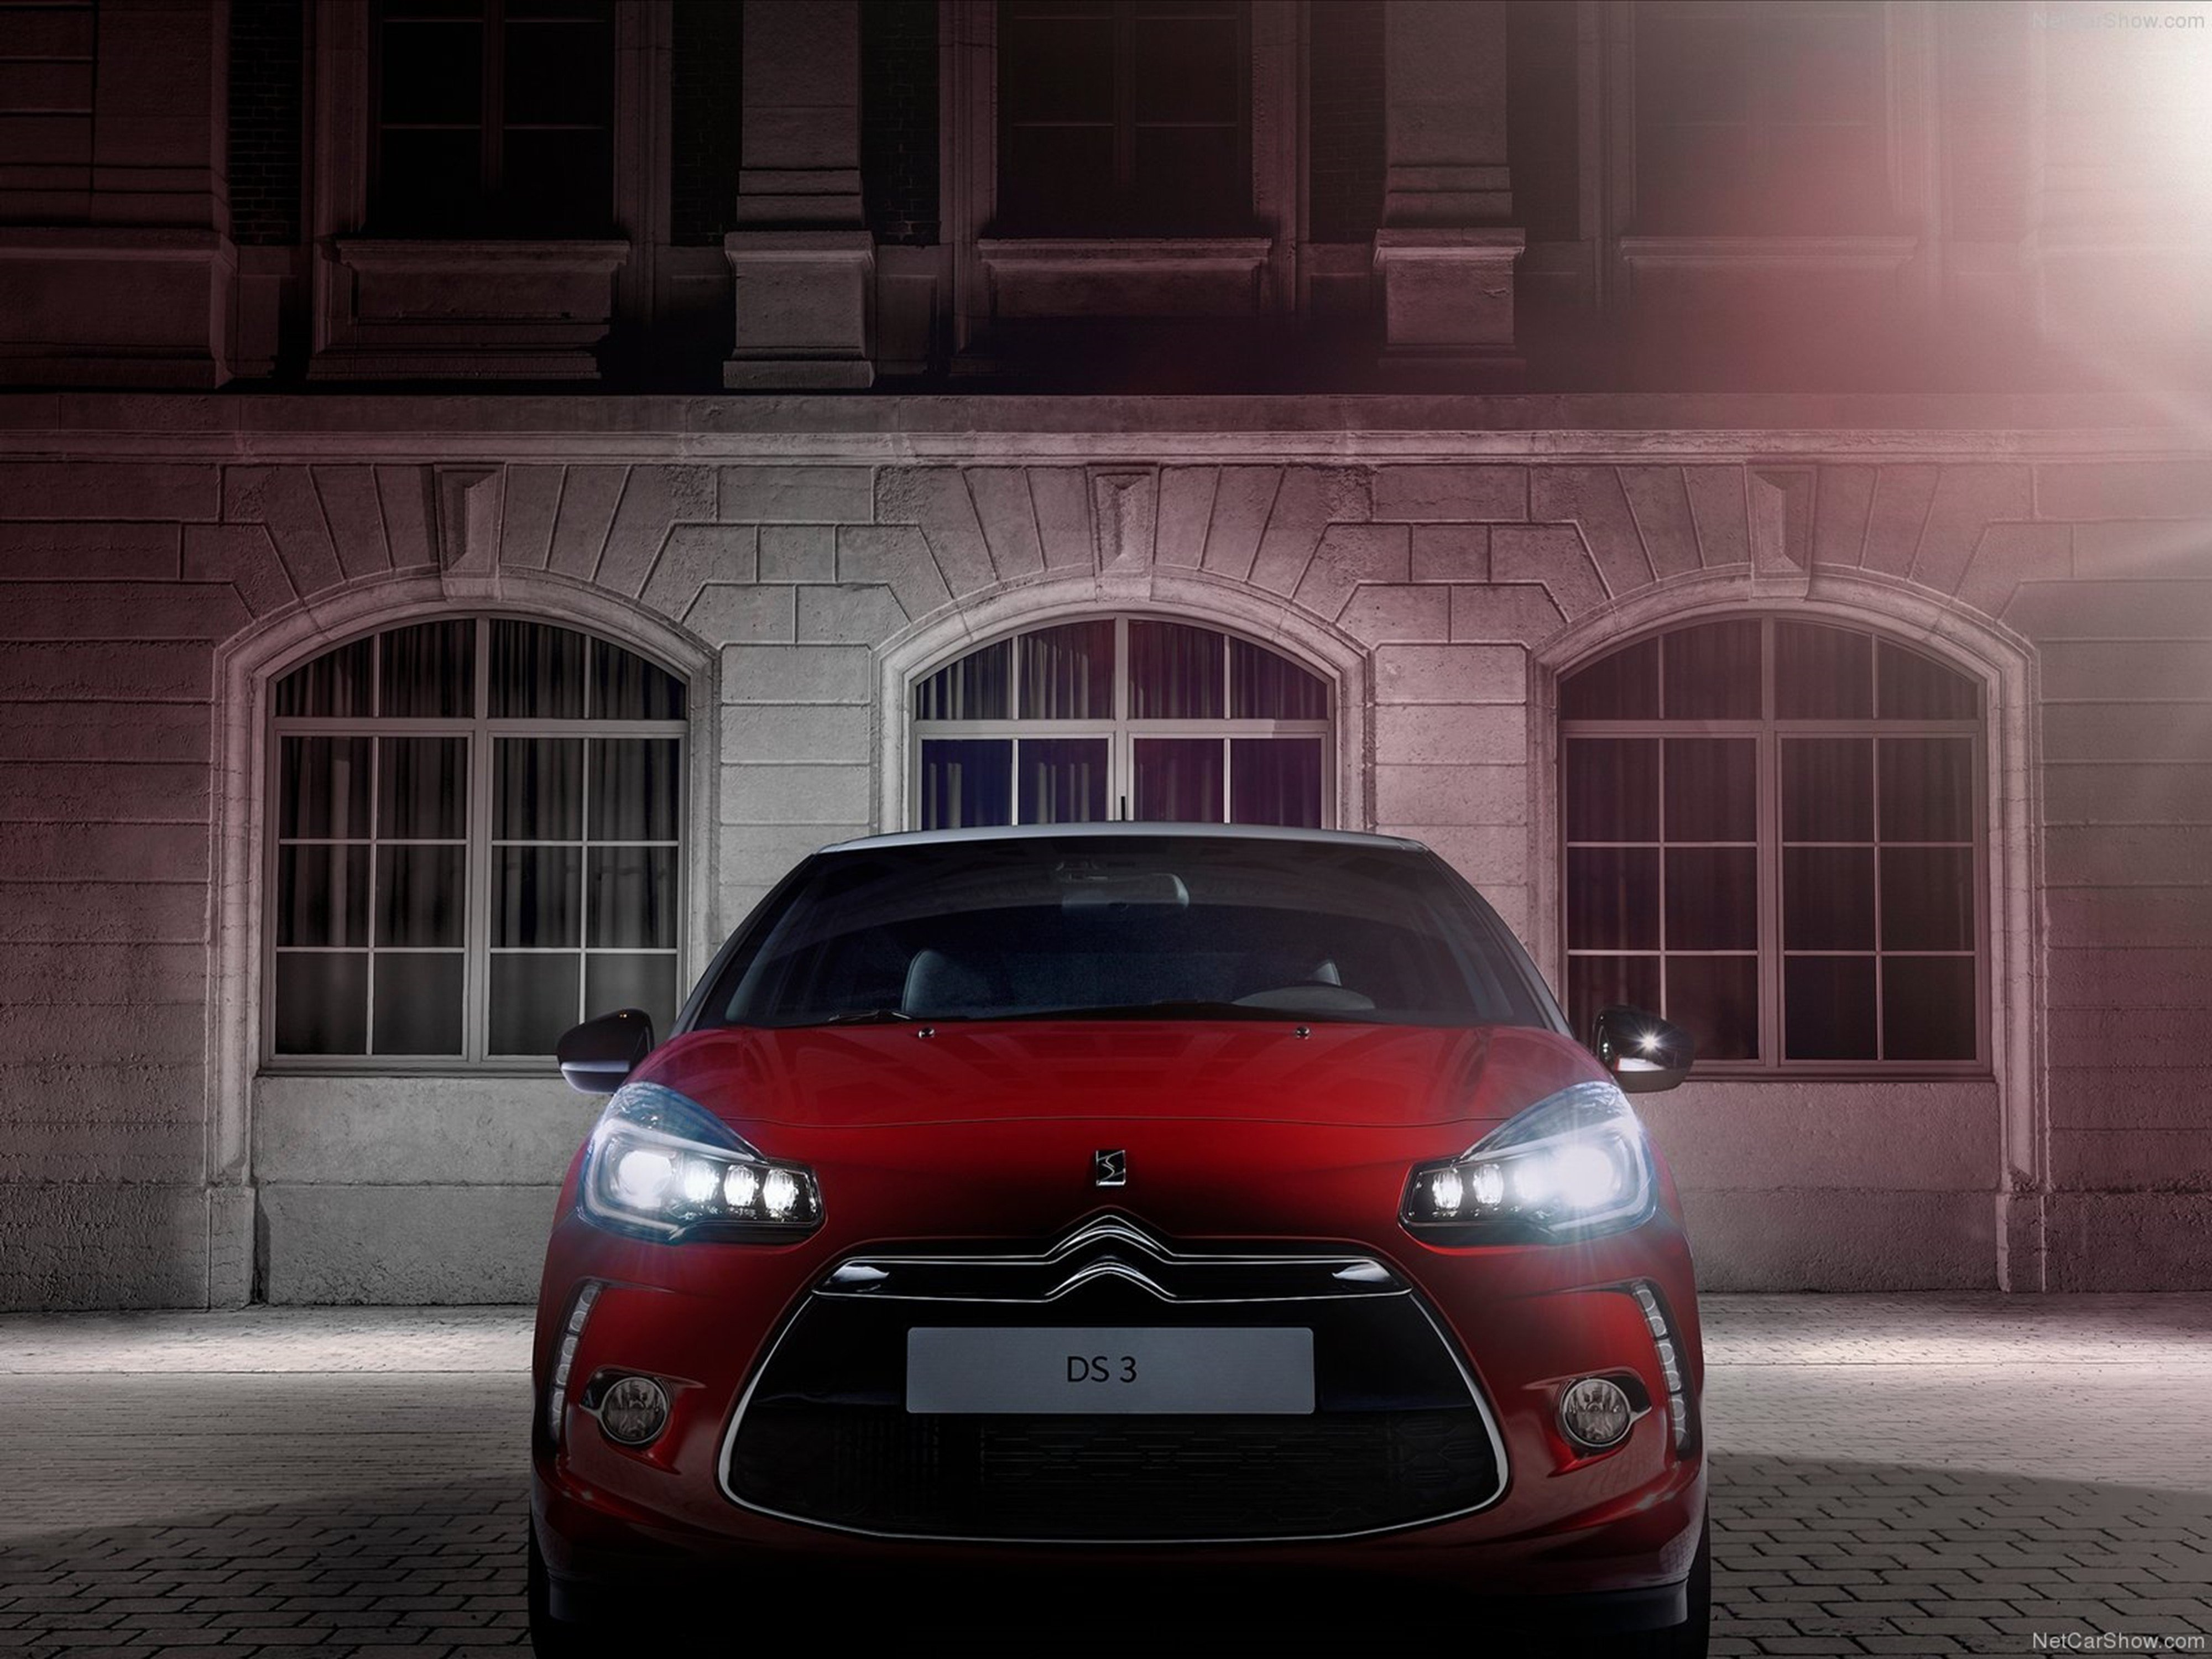 citroen ds3 car compact france 2015 wallpaper 4000x3000 wallpaper 4000x3000 355735 wallpaperup. Black Bedroom Furniture Sets. Home Design Ideas